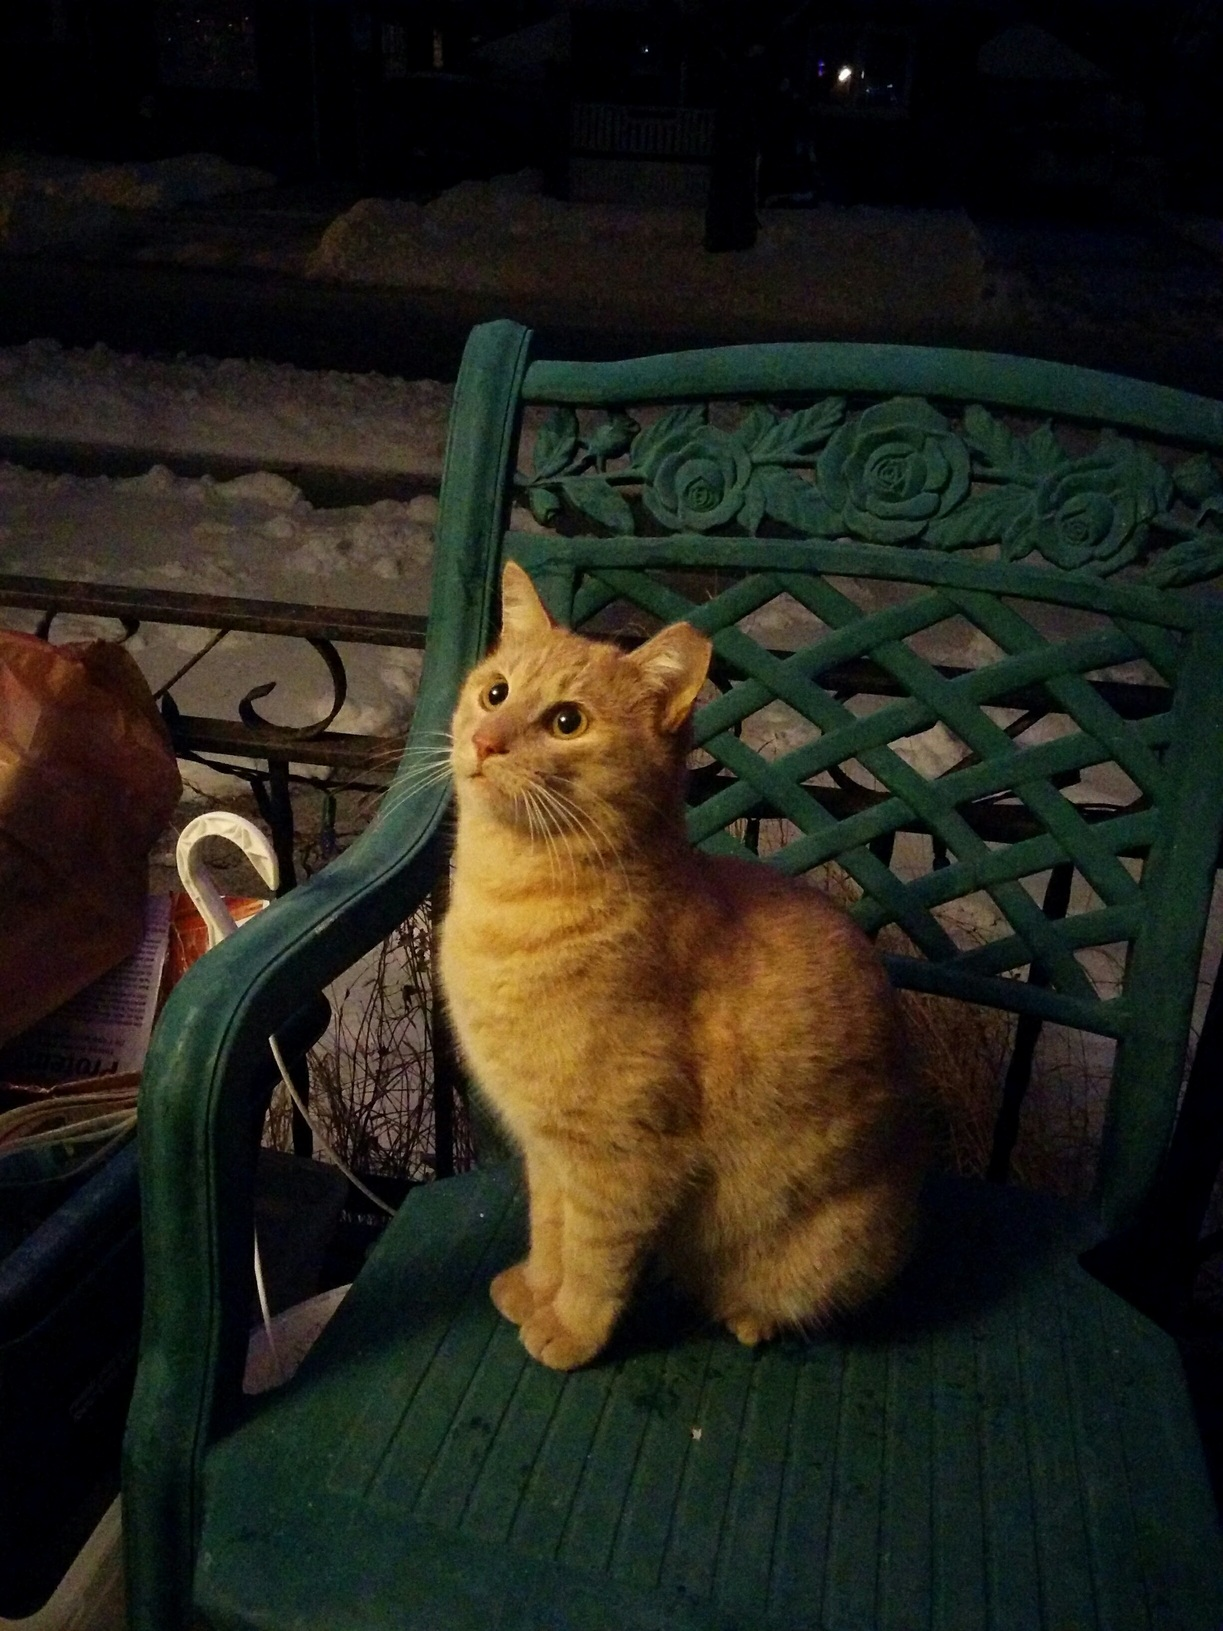 This is the neighborhood stray that comes to visit me nightly. he is super cute and has become quite friendly. i have named him jimmy. xpost from rcatpictures